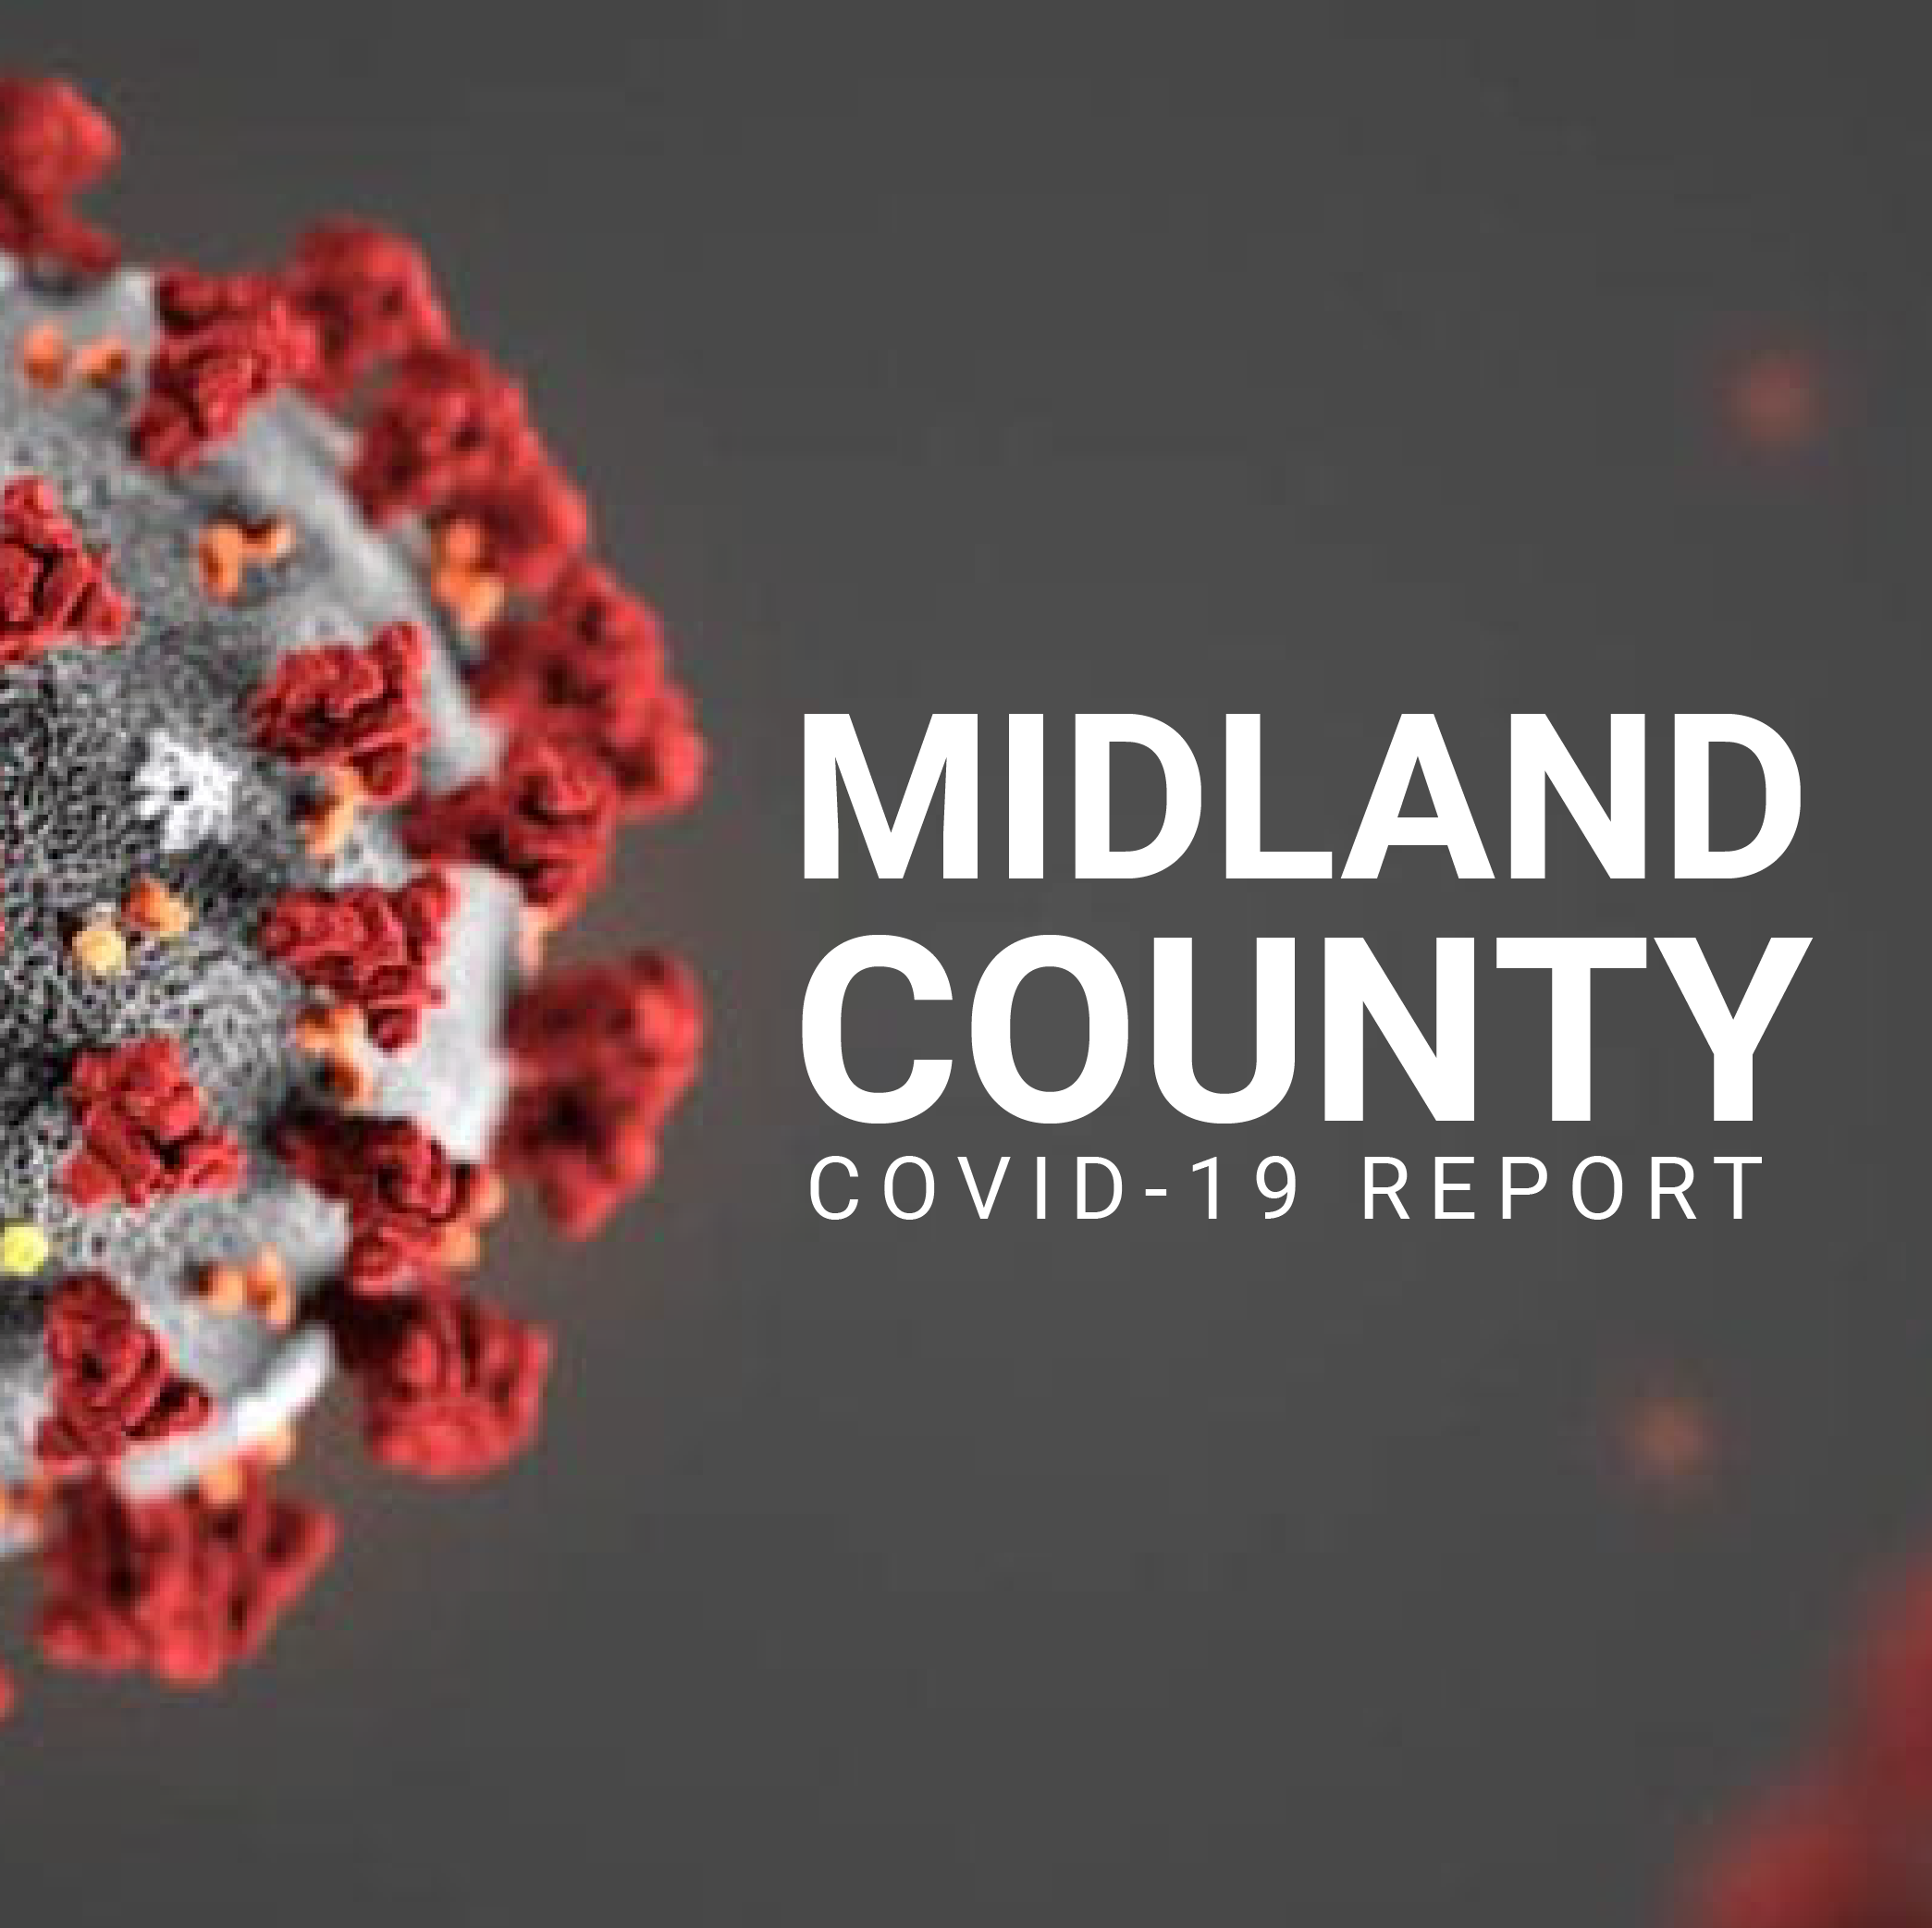 Midland County COVID-19 Report